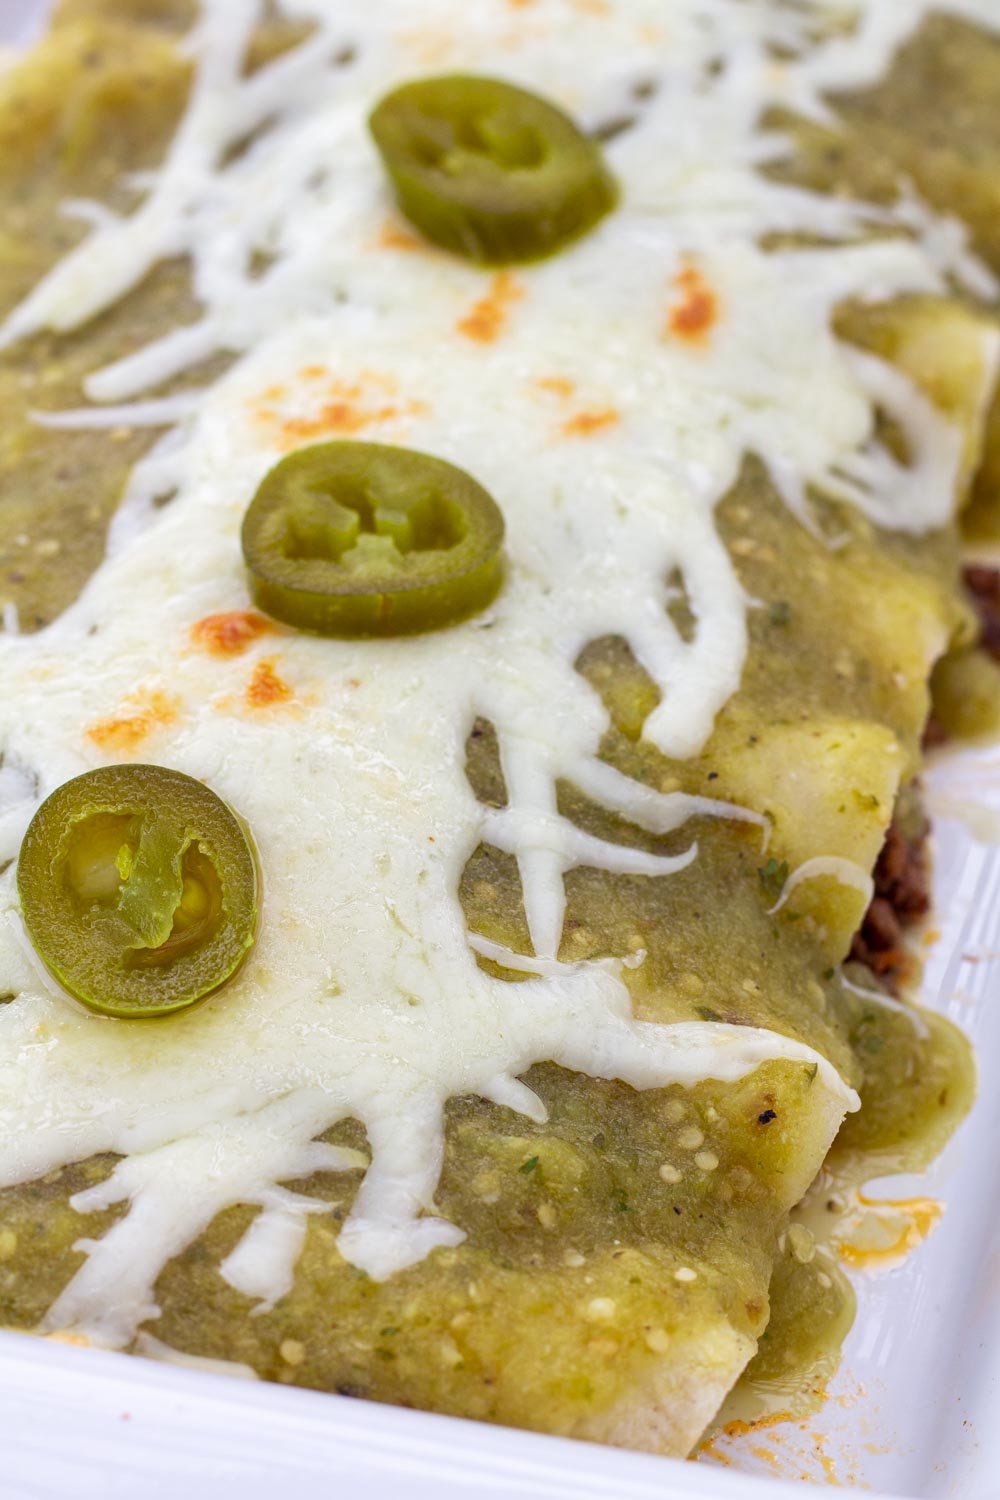 A close up of enchiladas smothered in green tomatillo sauce.